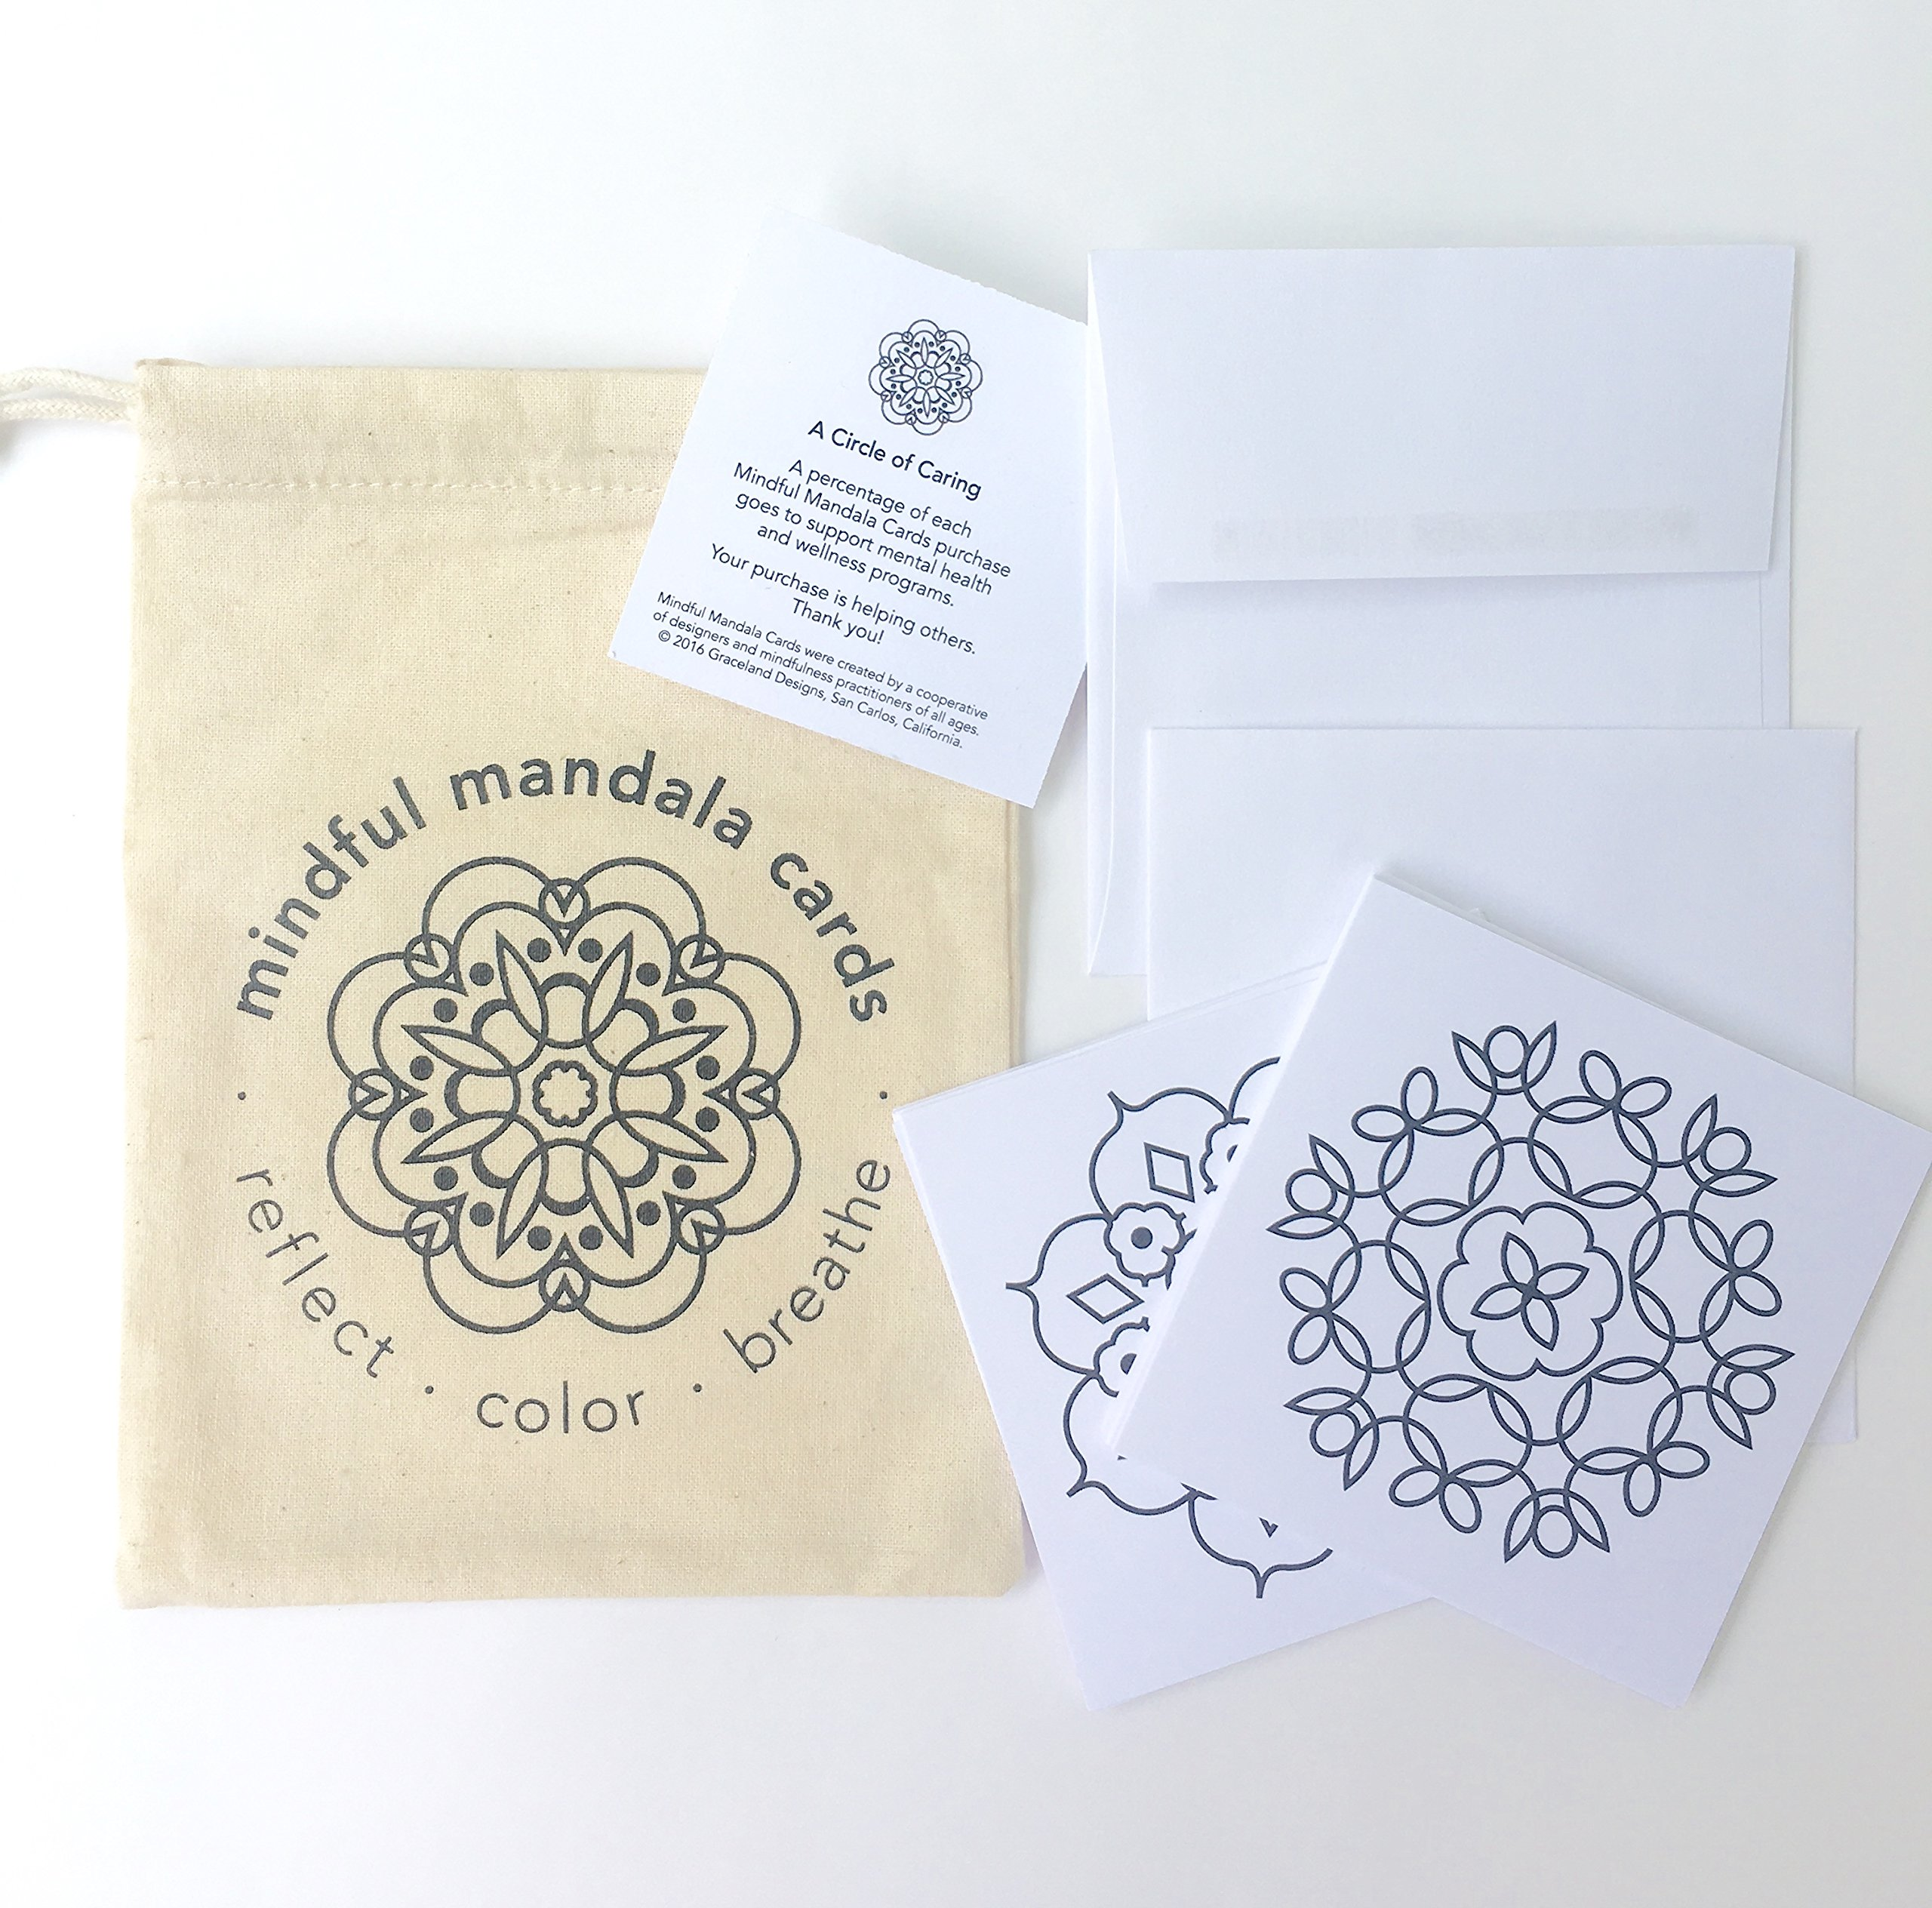 Mindful Mandala Cards: Set of 12 gift enclosure mindfulness coloring cards, with envelopes, in a cotton tote. Each two-sided card has an original mandala to color, paired with an inspiring quotation.